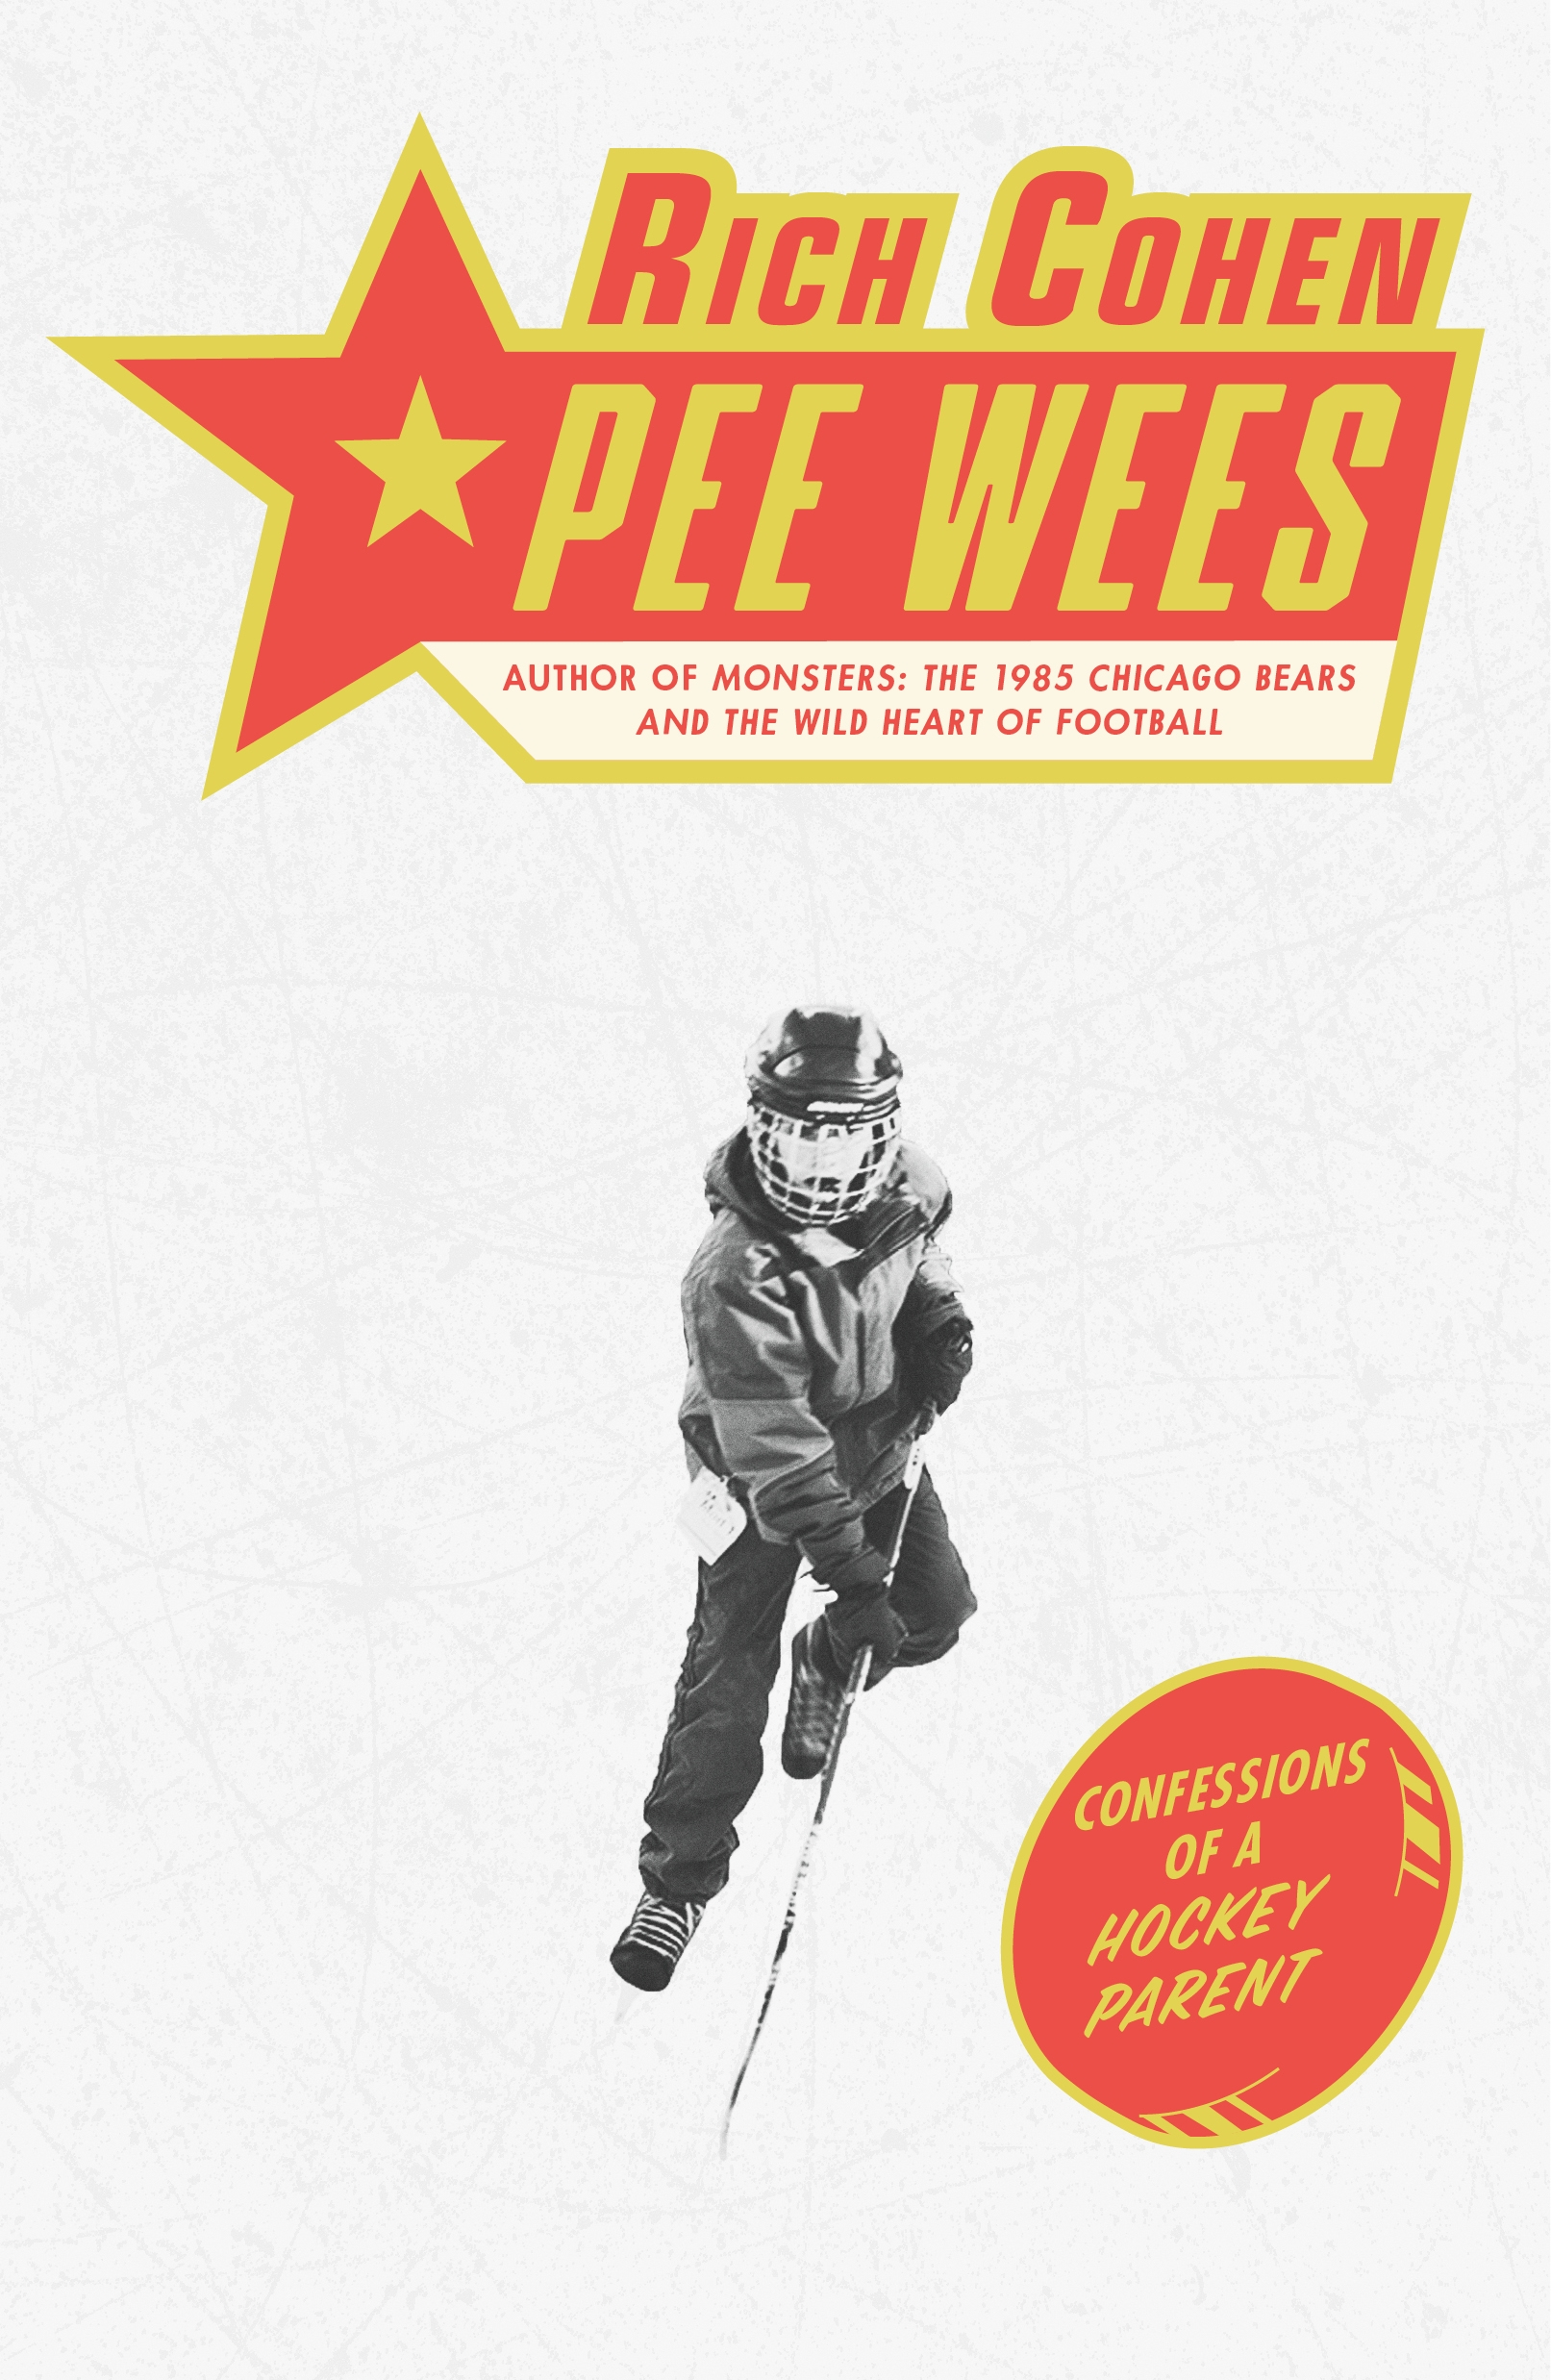 Cover for Pee Wees: Confessions of a Hockey Parent